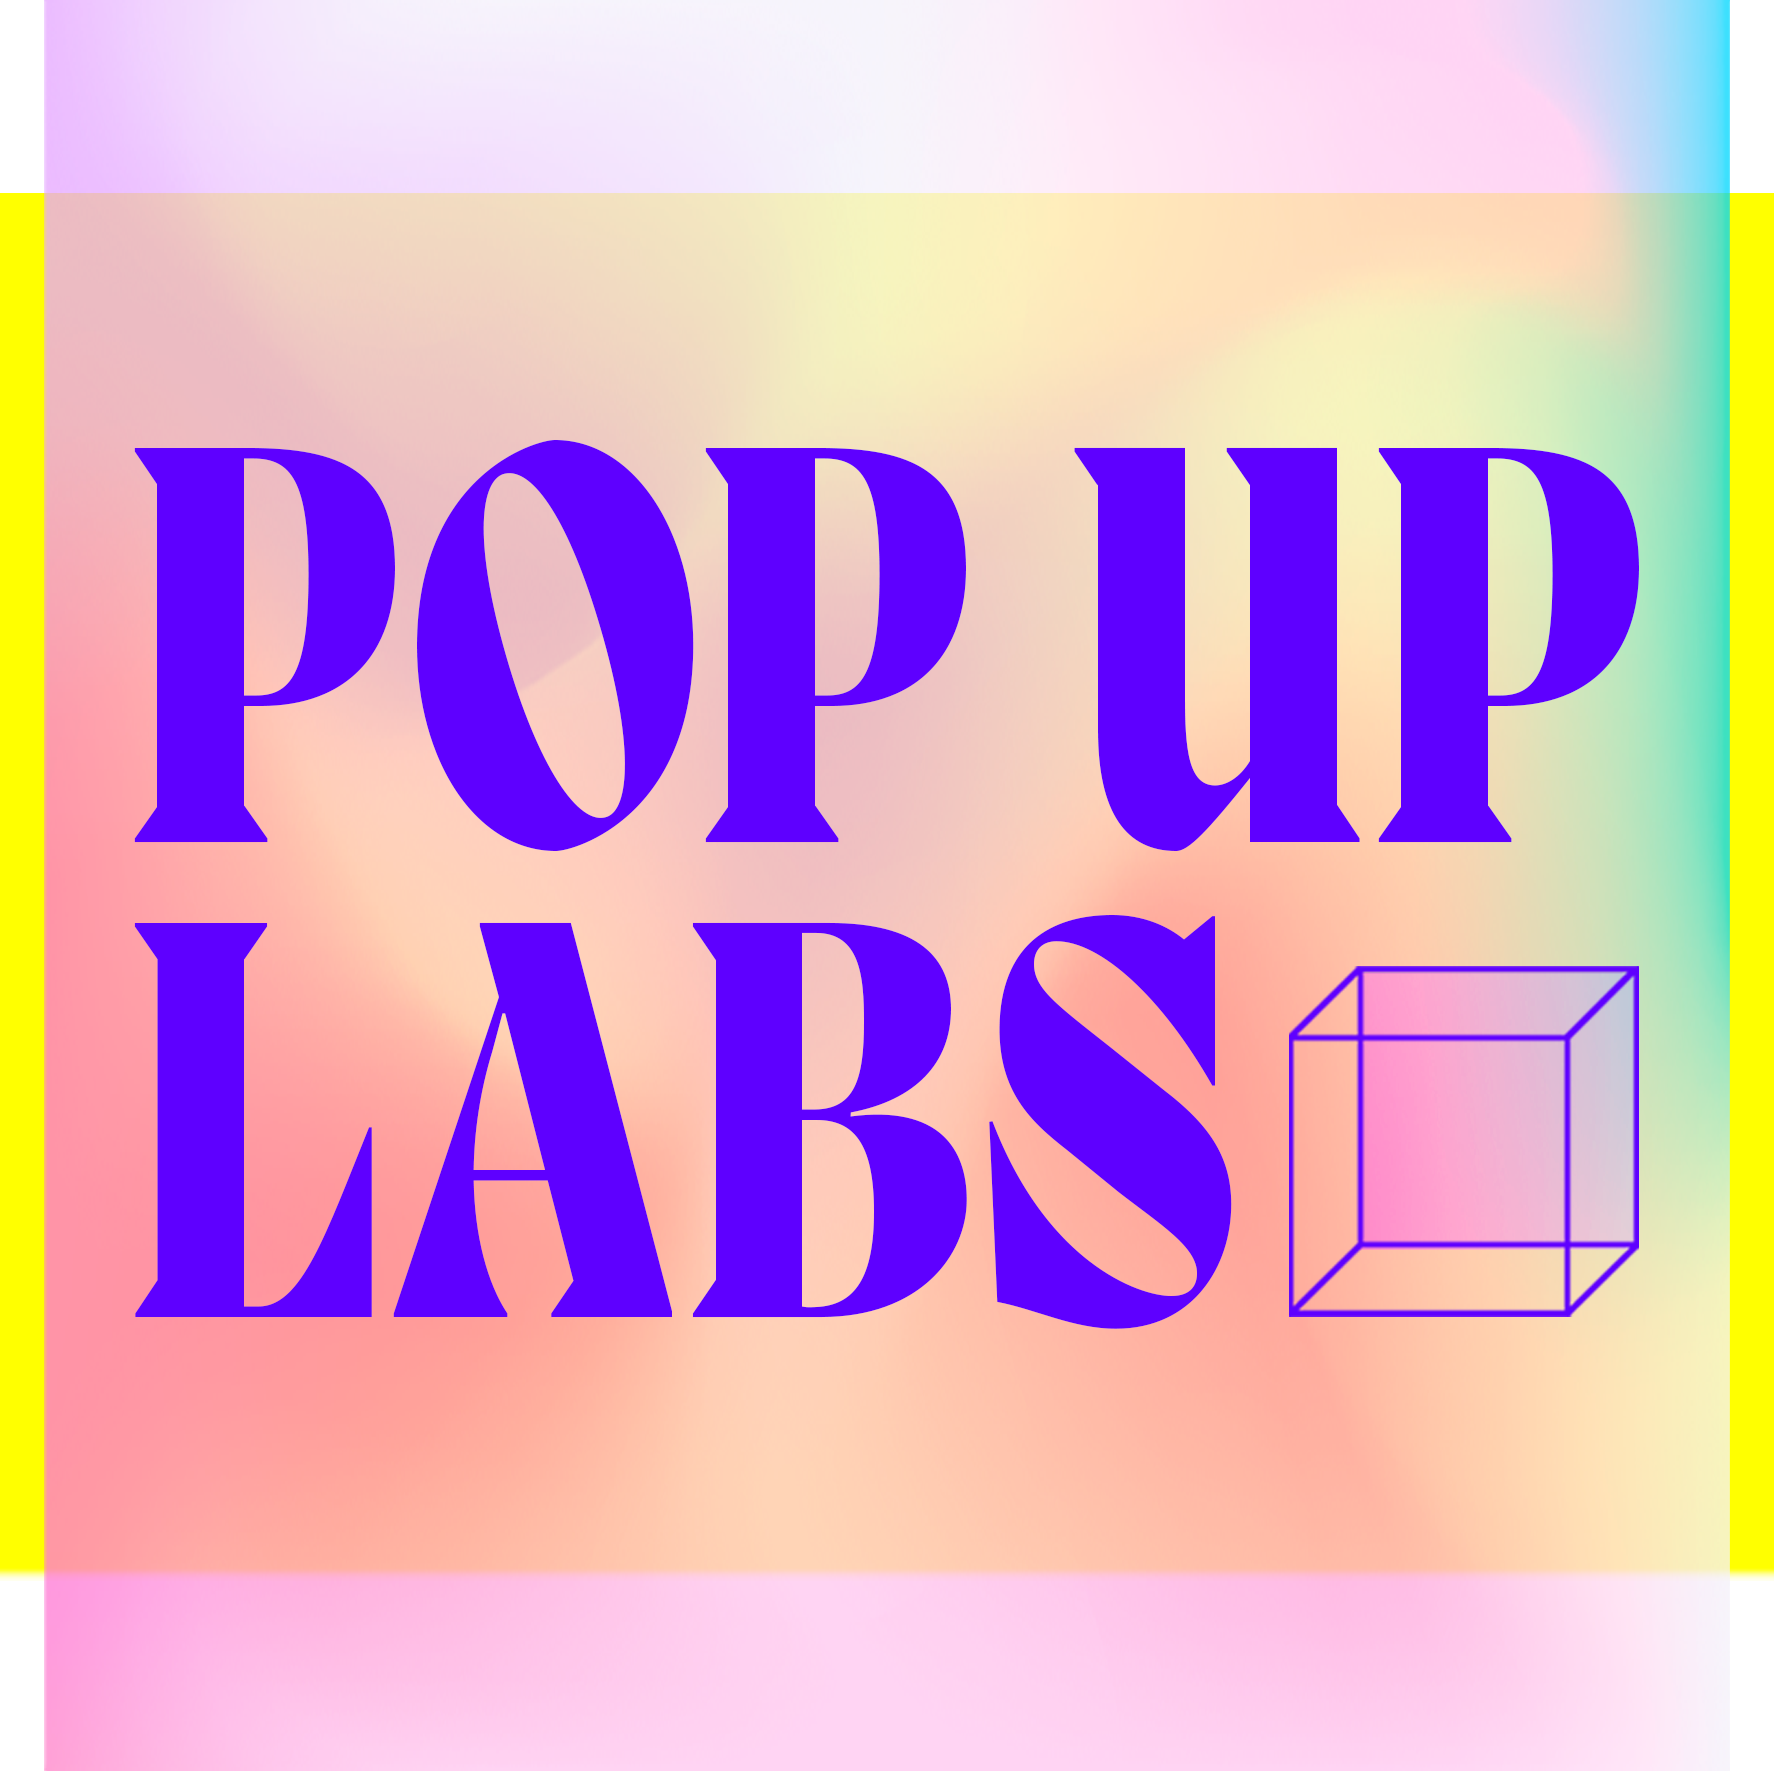 Blue text on gradient background with pink, blue and yellow. Text reads Pop Up Labs. 3-d cube illustration to the right of the text